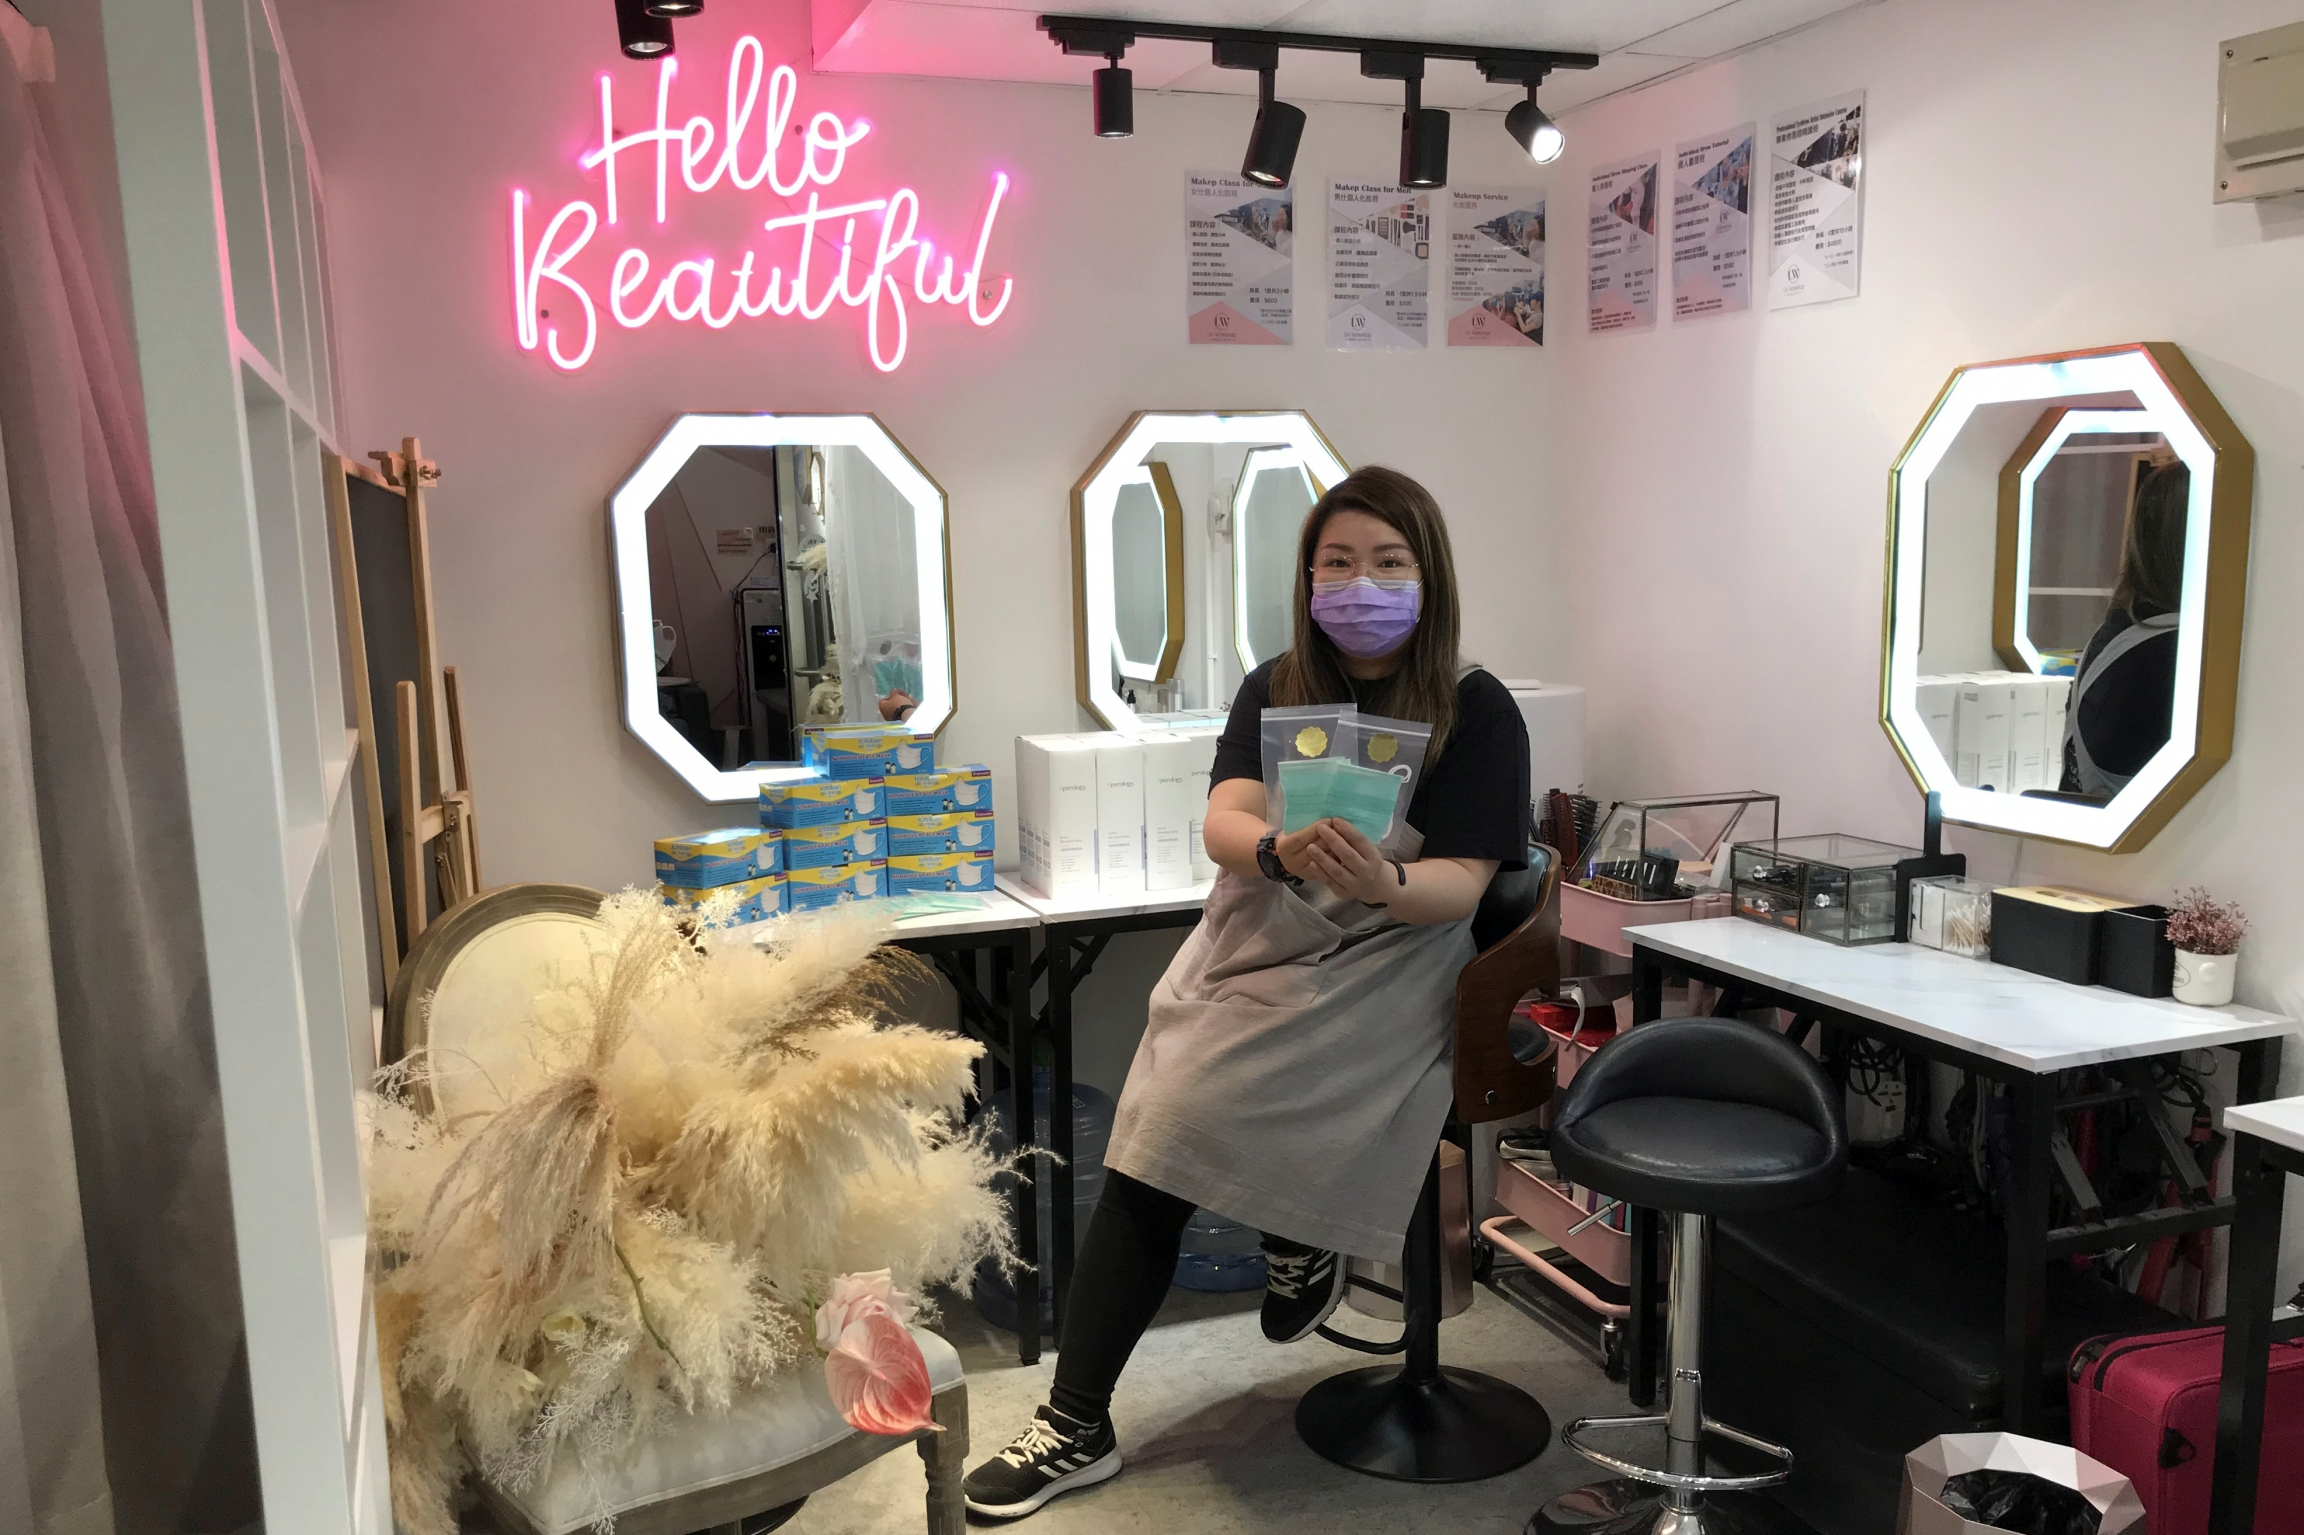 A woman sits in a beauty salon